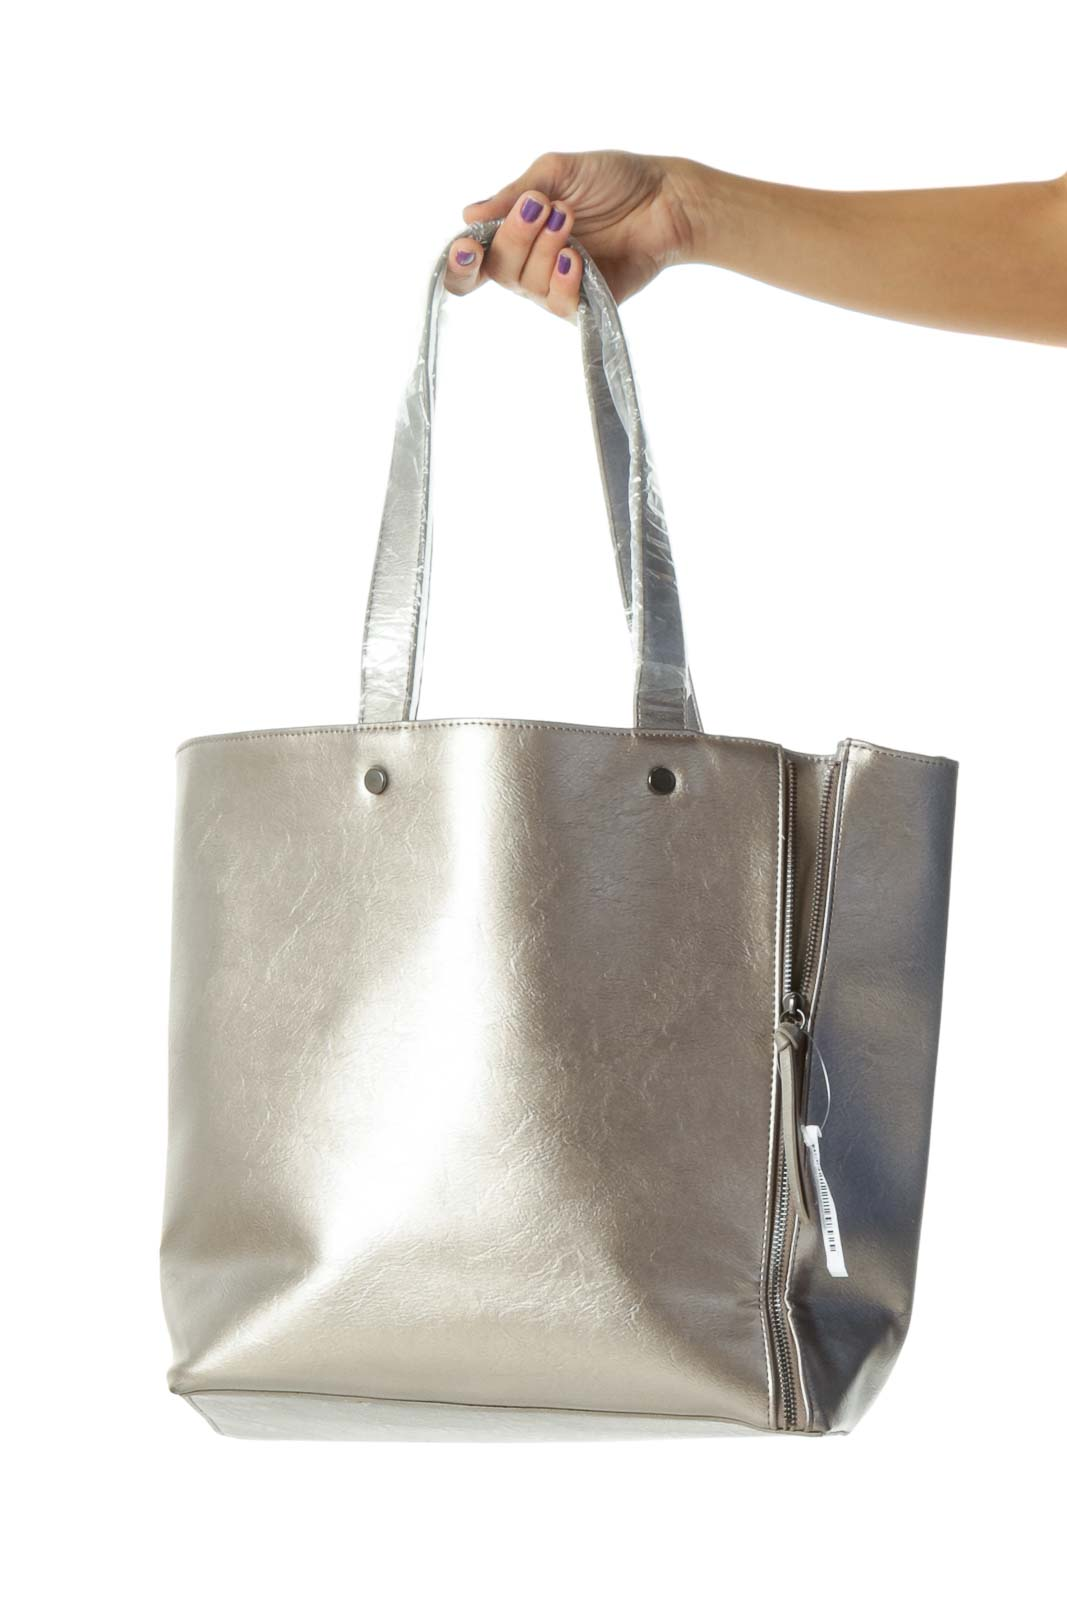 Silver Gray Open Zippers and Tassels Details Open Tote Front